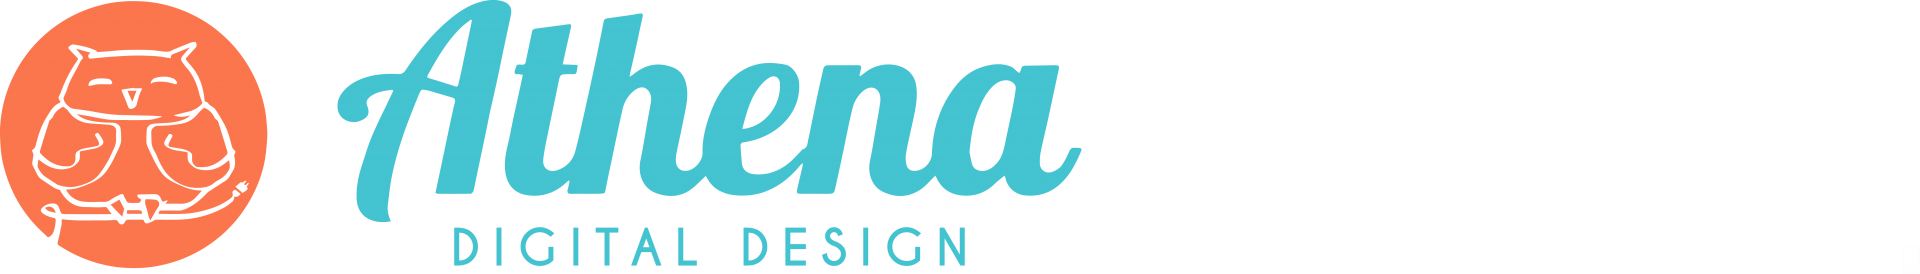 Athena Digital Design Logo